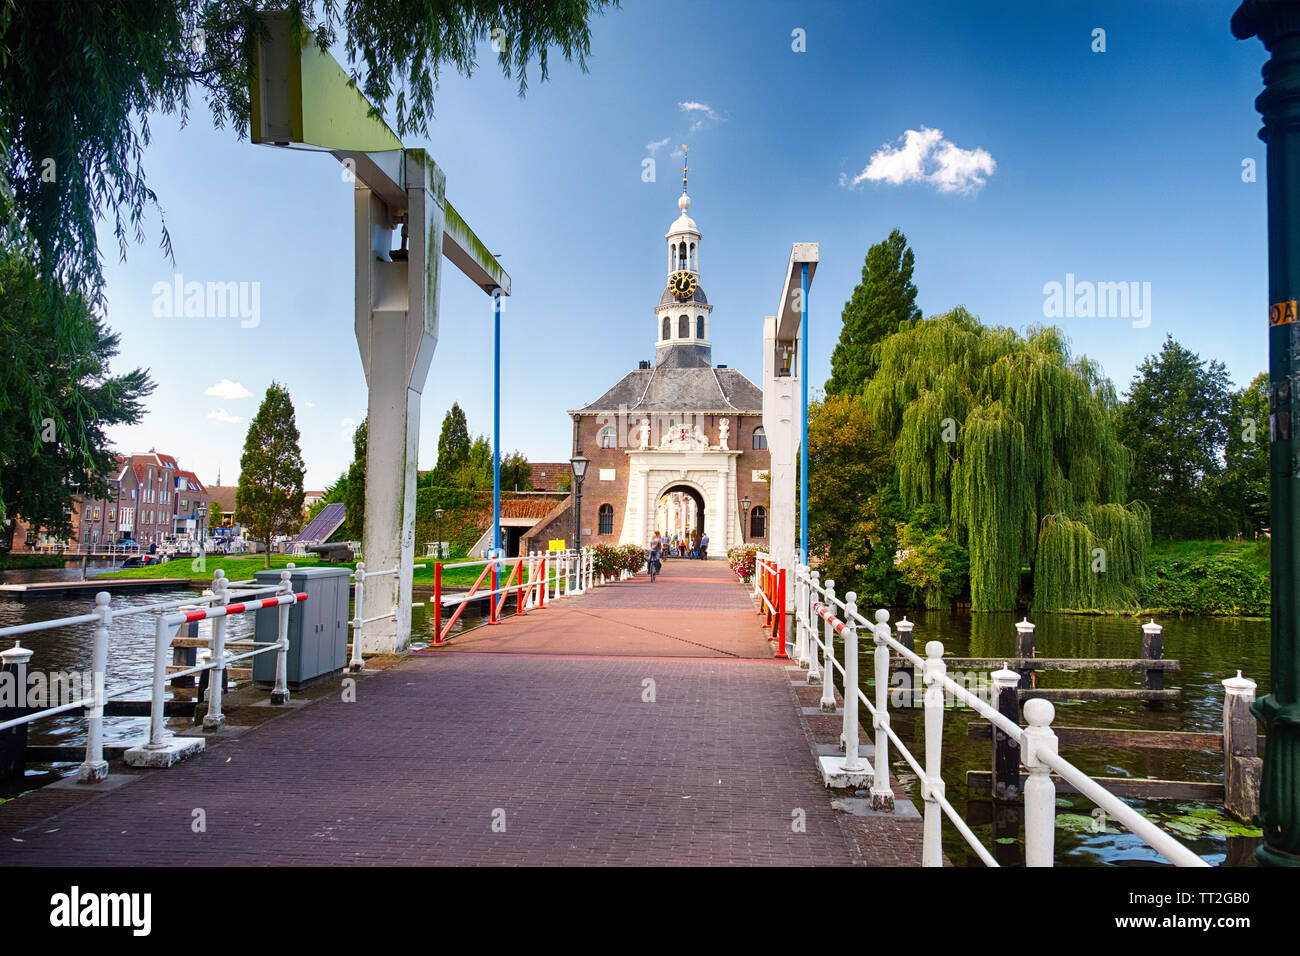 View of one of the  Zijlpoort City Gate in Leiden, South Holland, Netherlands Stock Photo